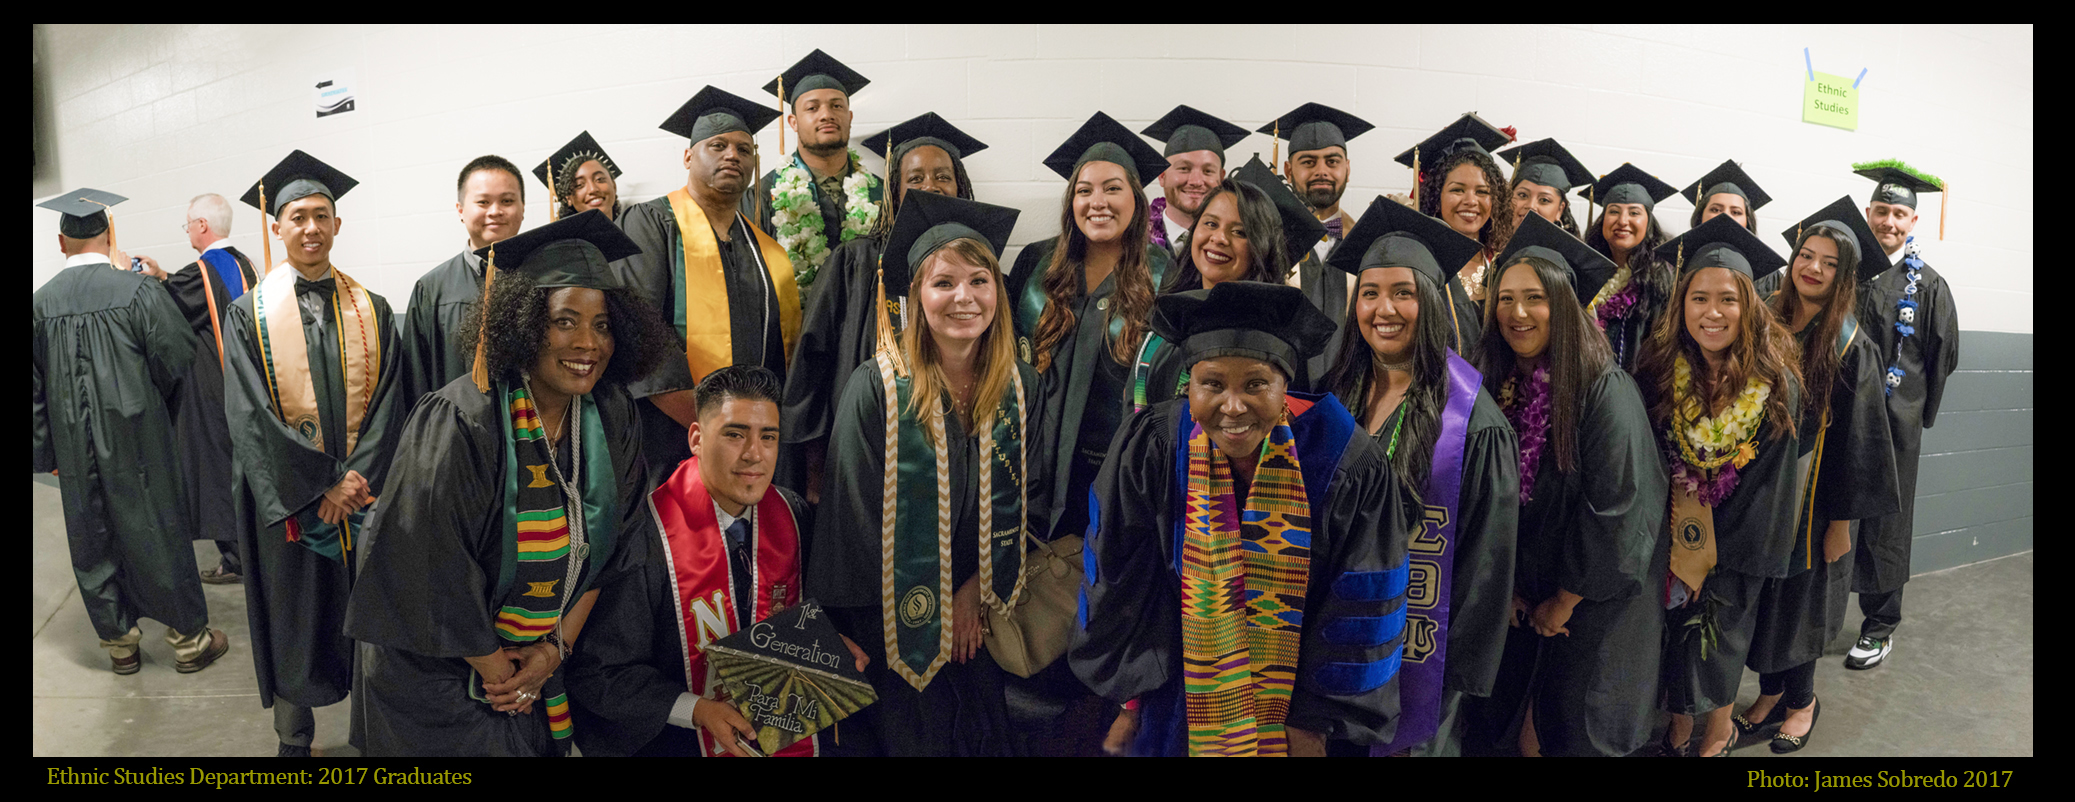 ethnic study The oldest ethnic studies association in the united states, the association for ethnic studies (aes) was founded in 1972 a non-profit organization, aes provides an interdisciplinary forum for scholars.